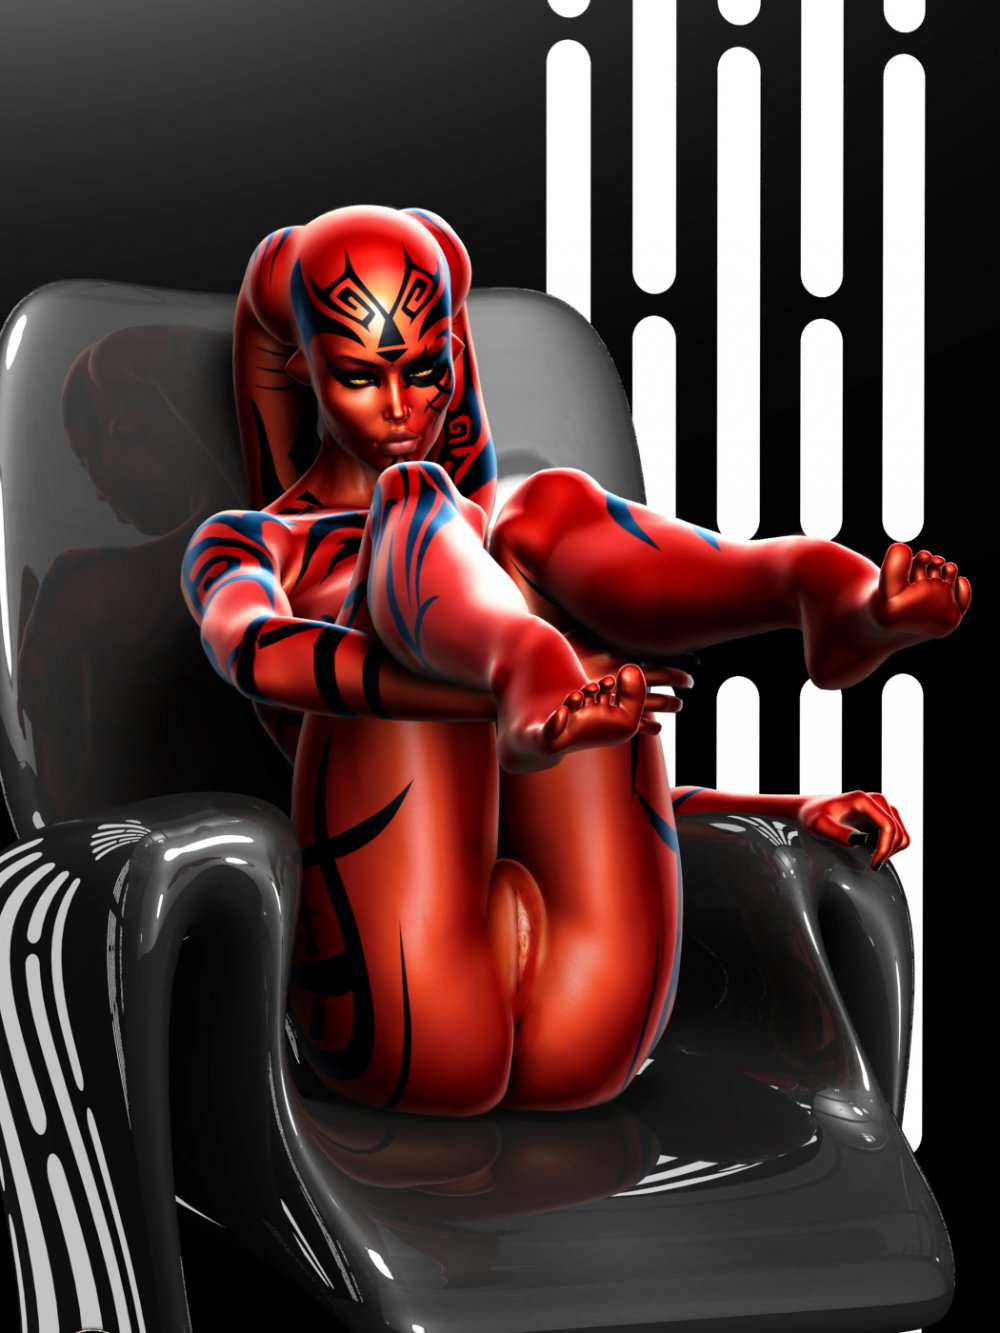 Star wars erotica exploited videos